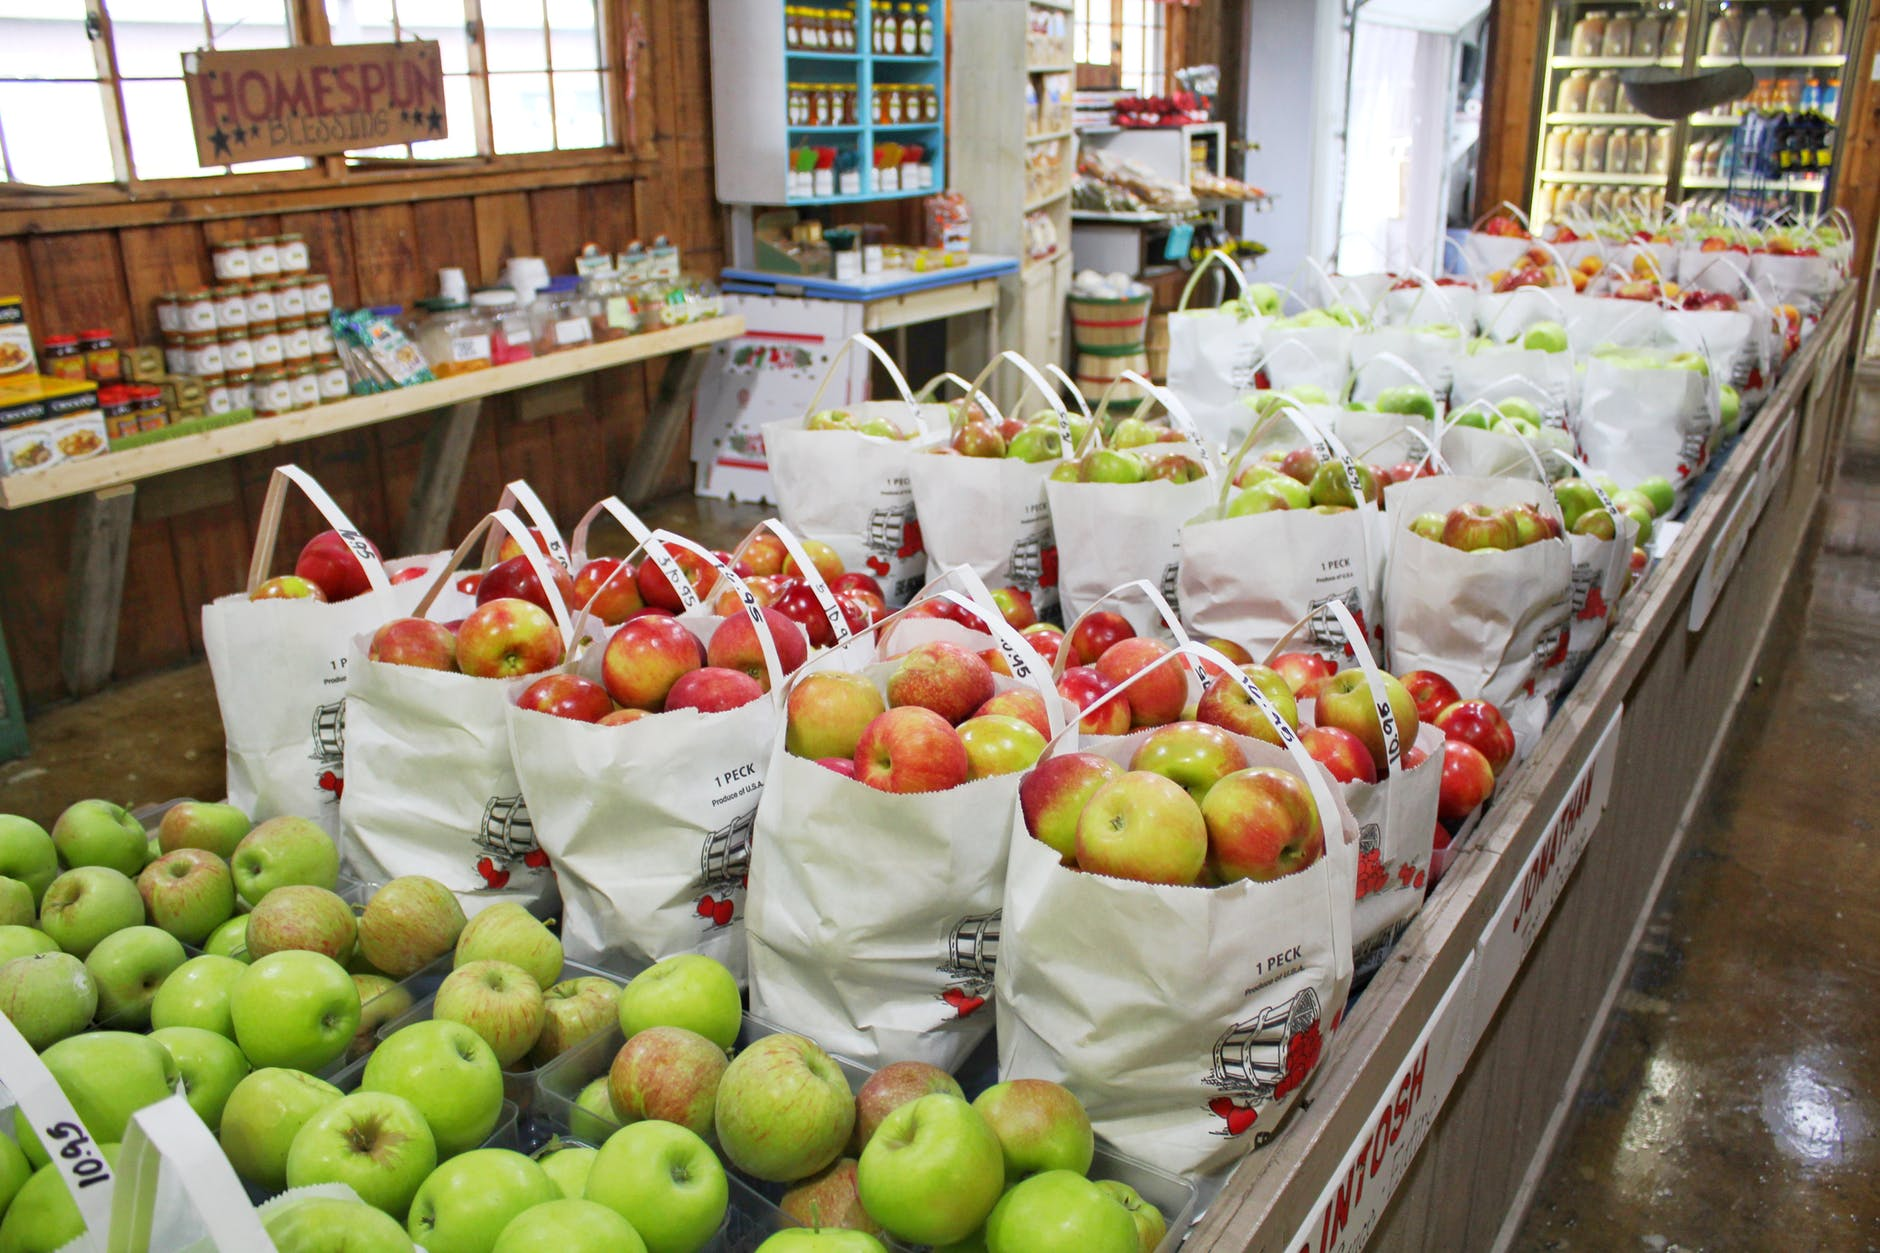 Buy organic apples. Apples frequently make the dirty dozen list published by EWG.